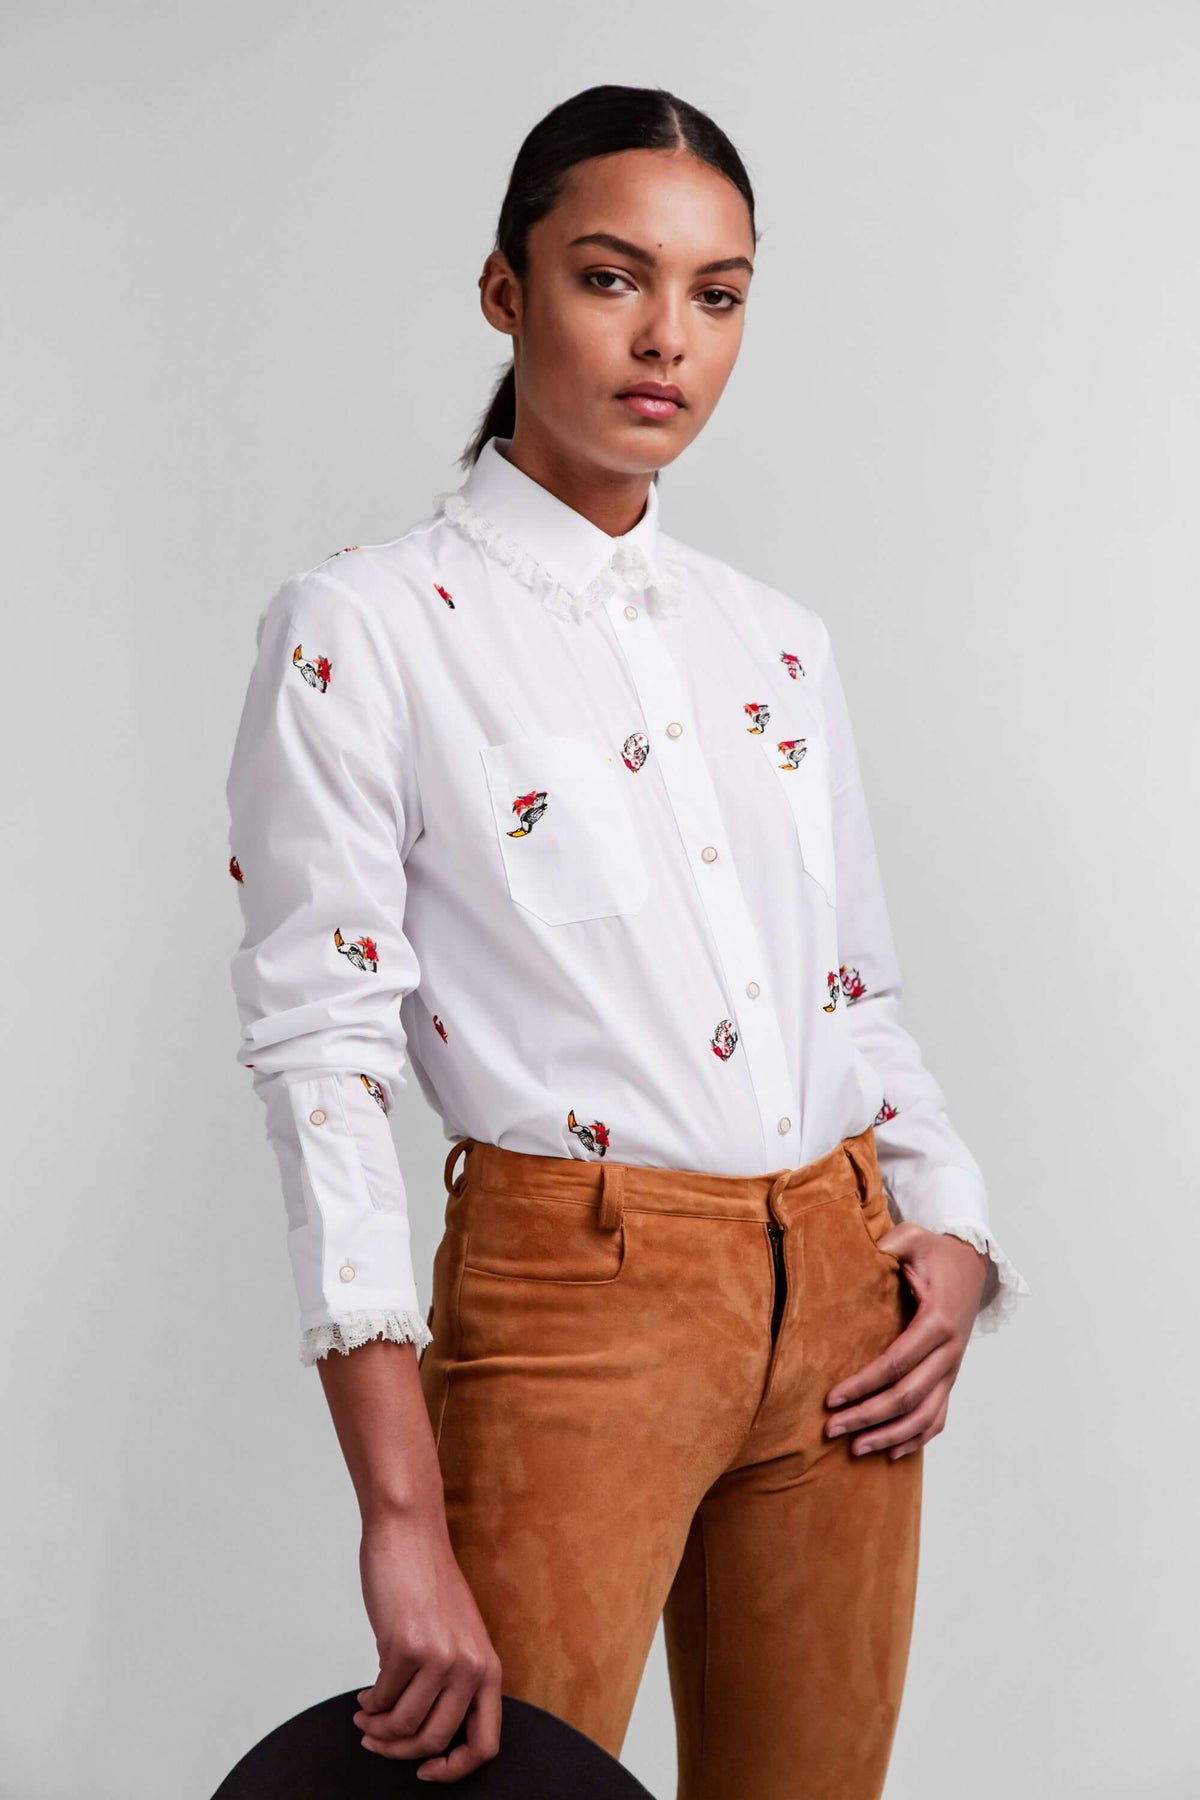 Dori shirt in pirate embroideries